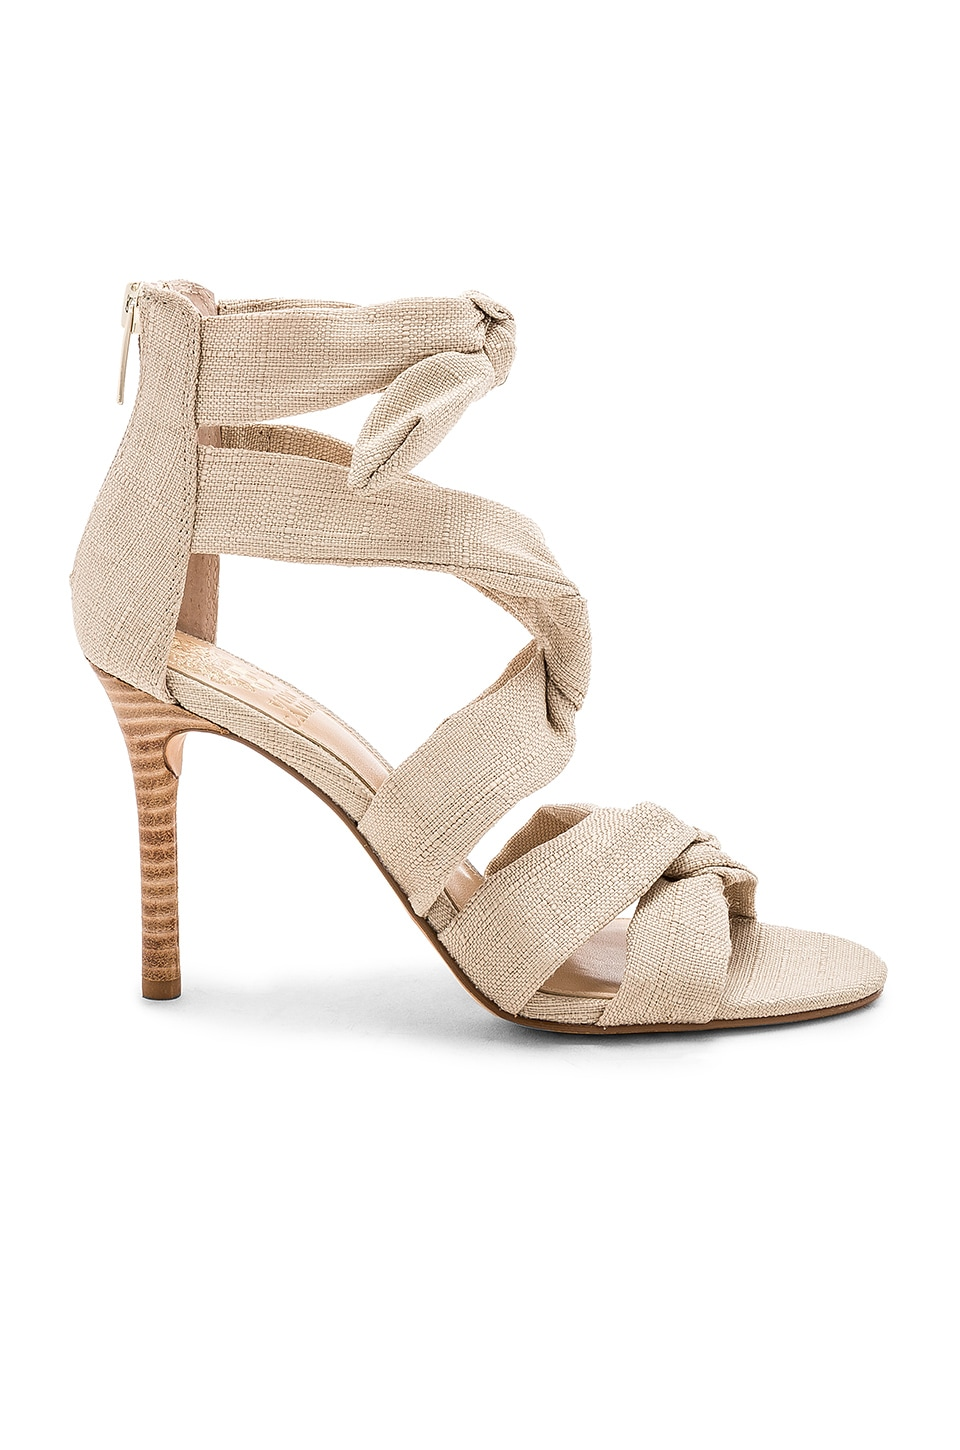 Vince Camuto Chania Heel in Soft Beige